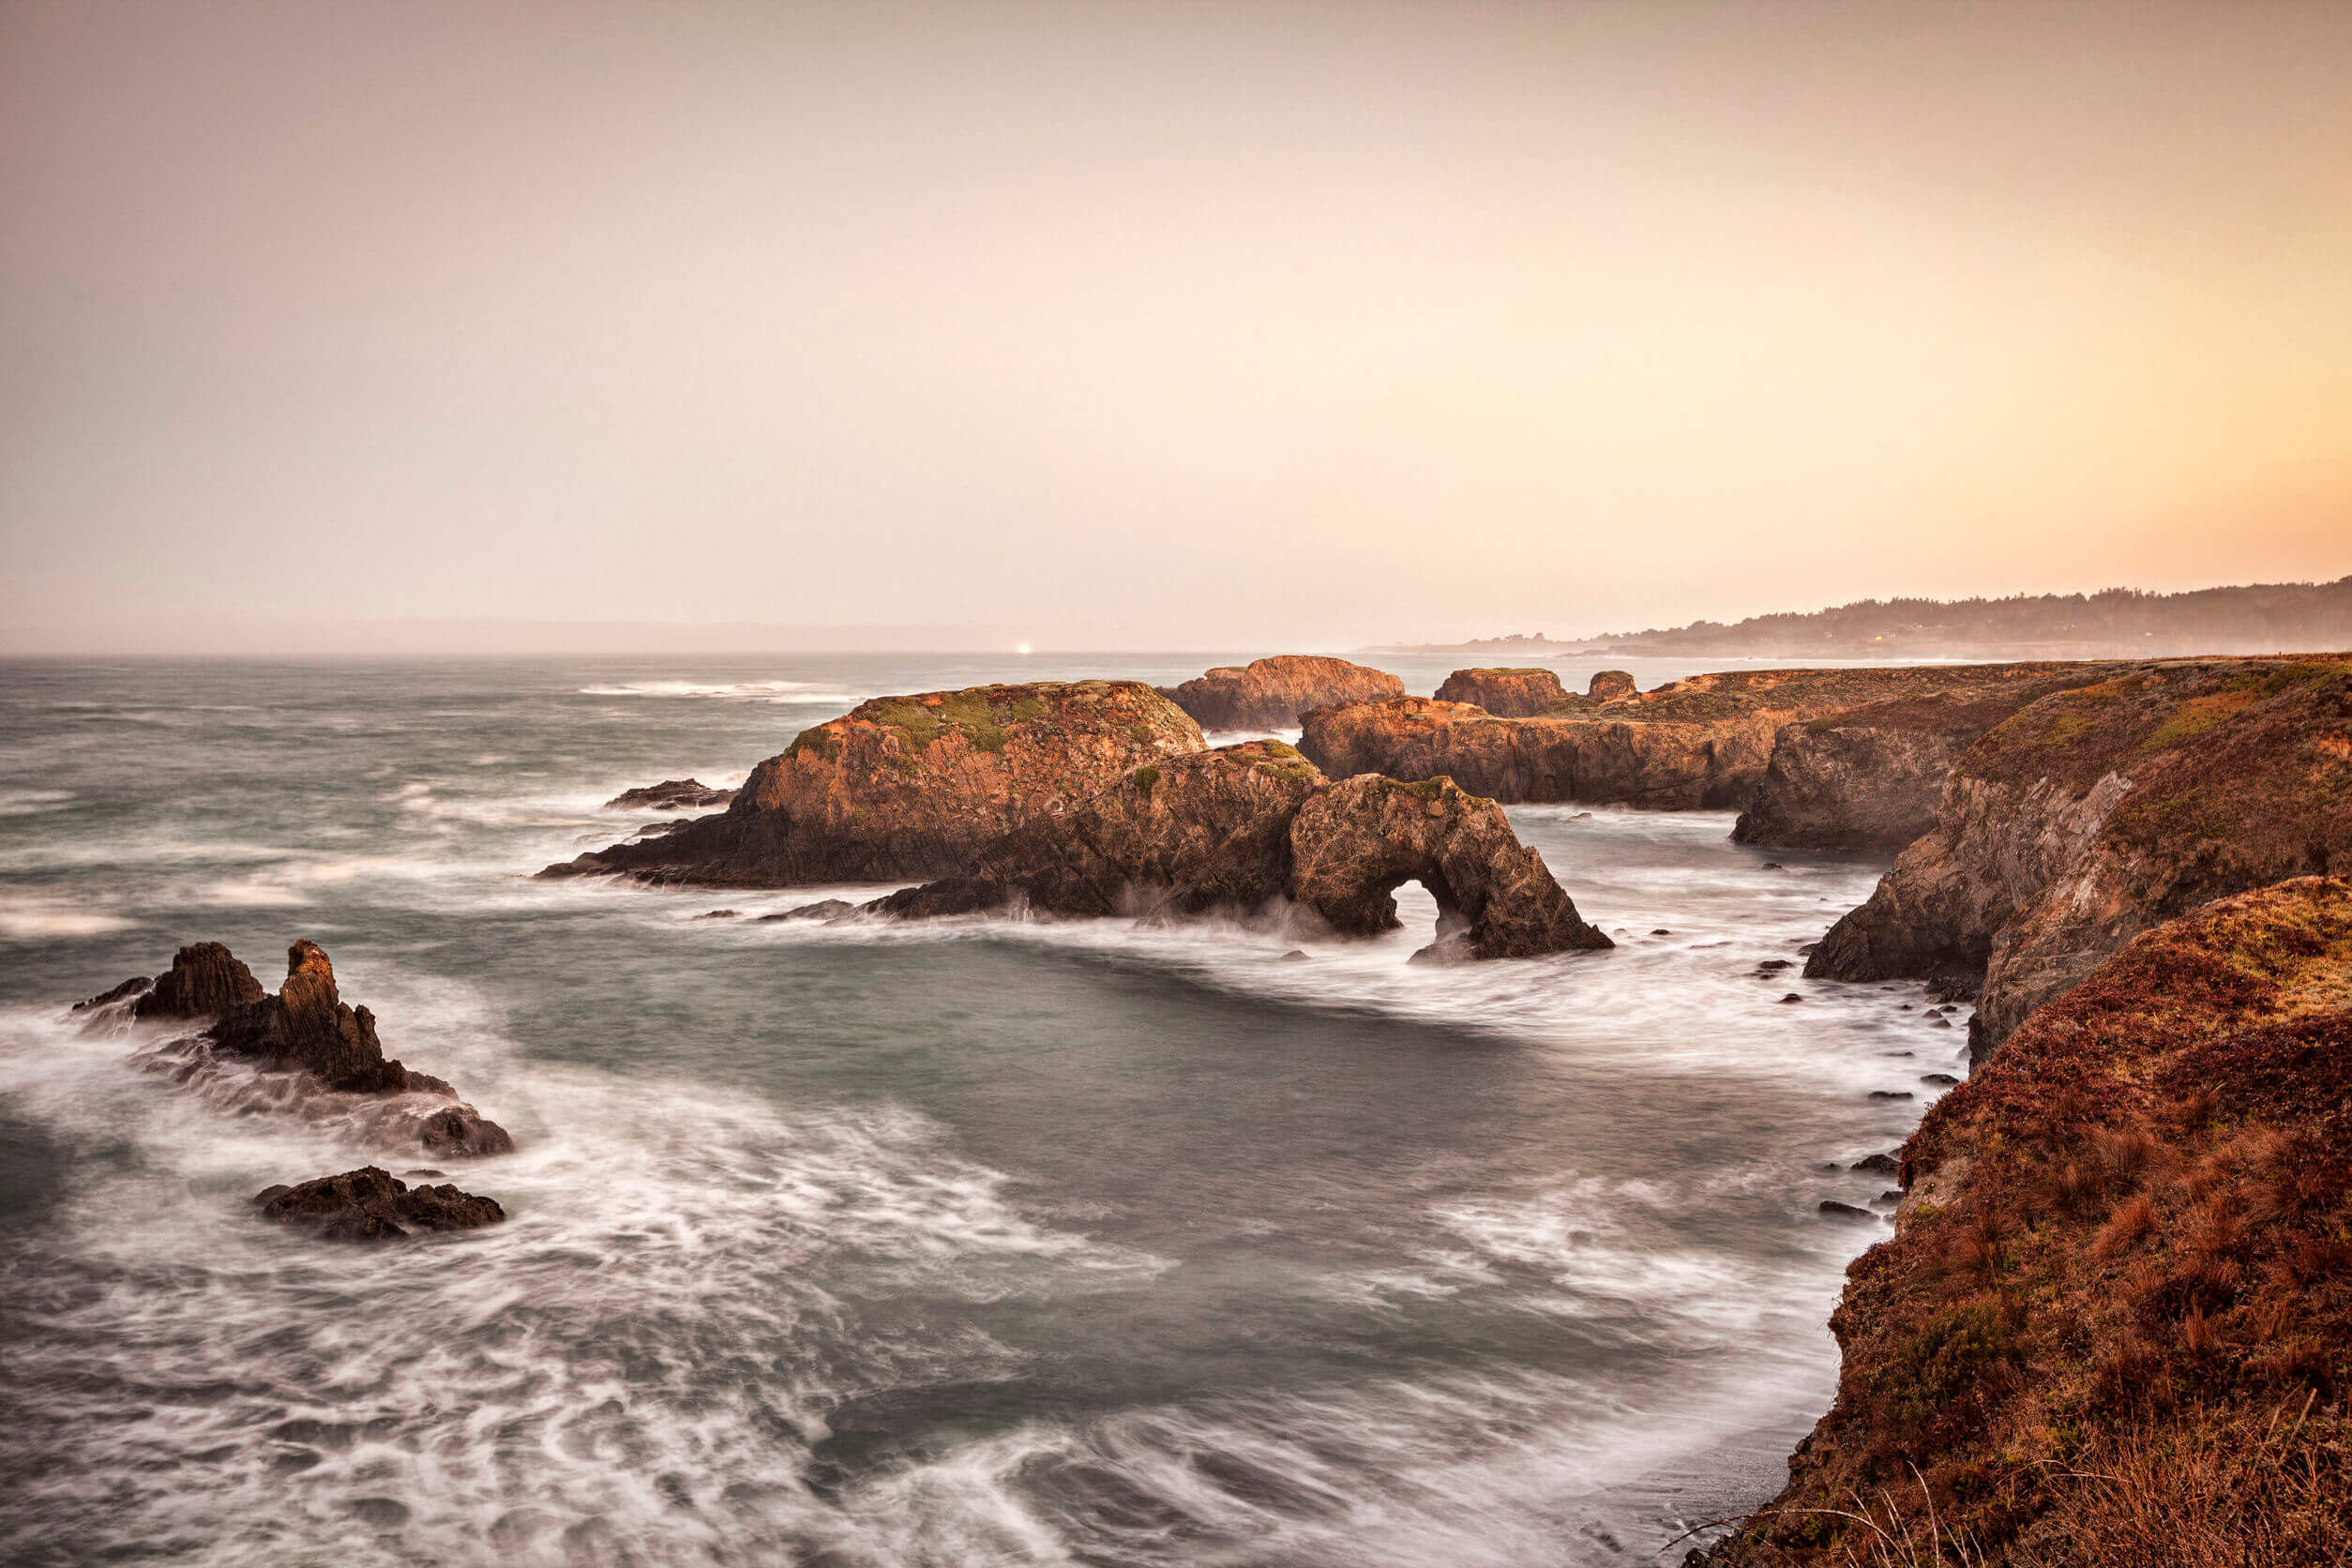 Mendocino Headlands, California at dawn, looking over the ocean.